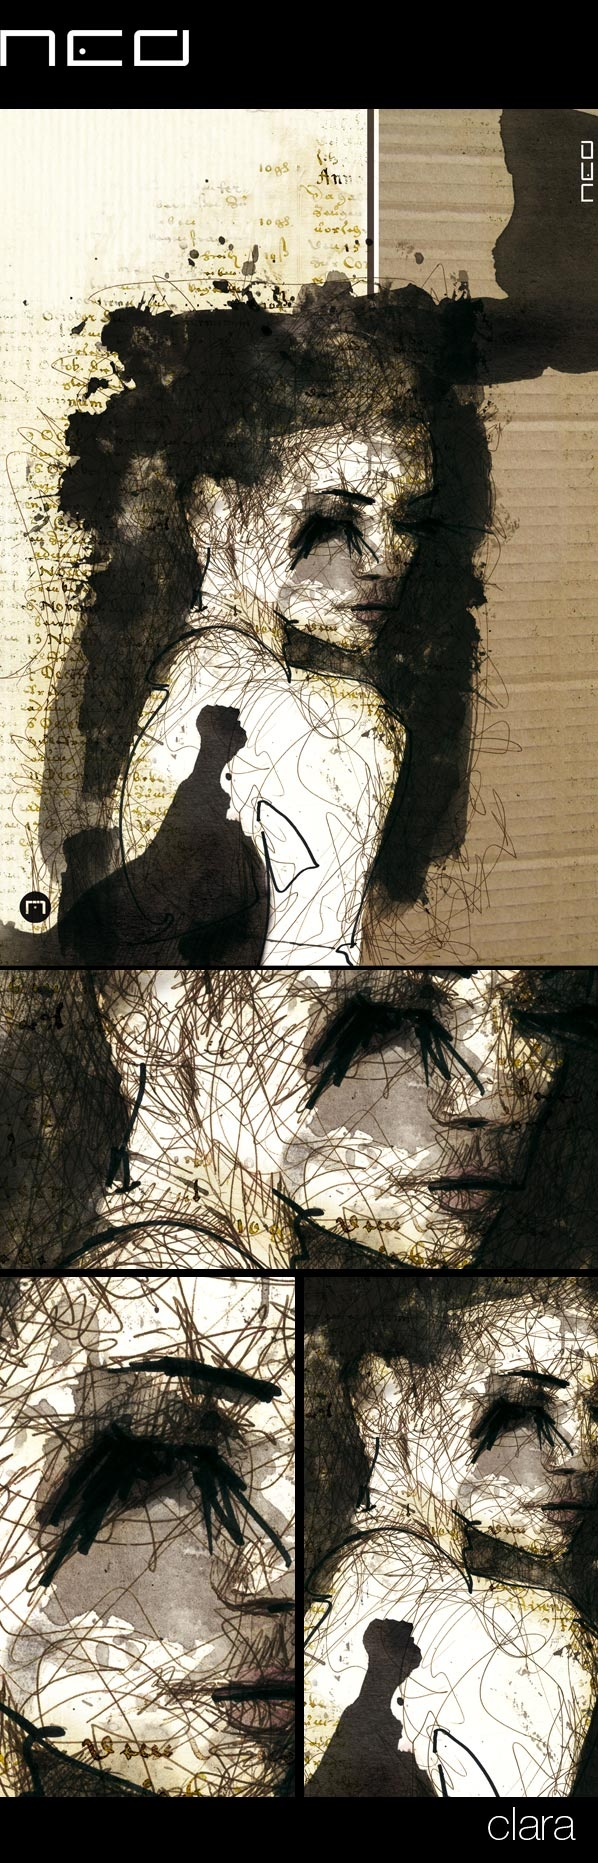 clara by Florian NICOLLE, via Behance